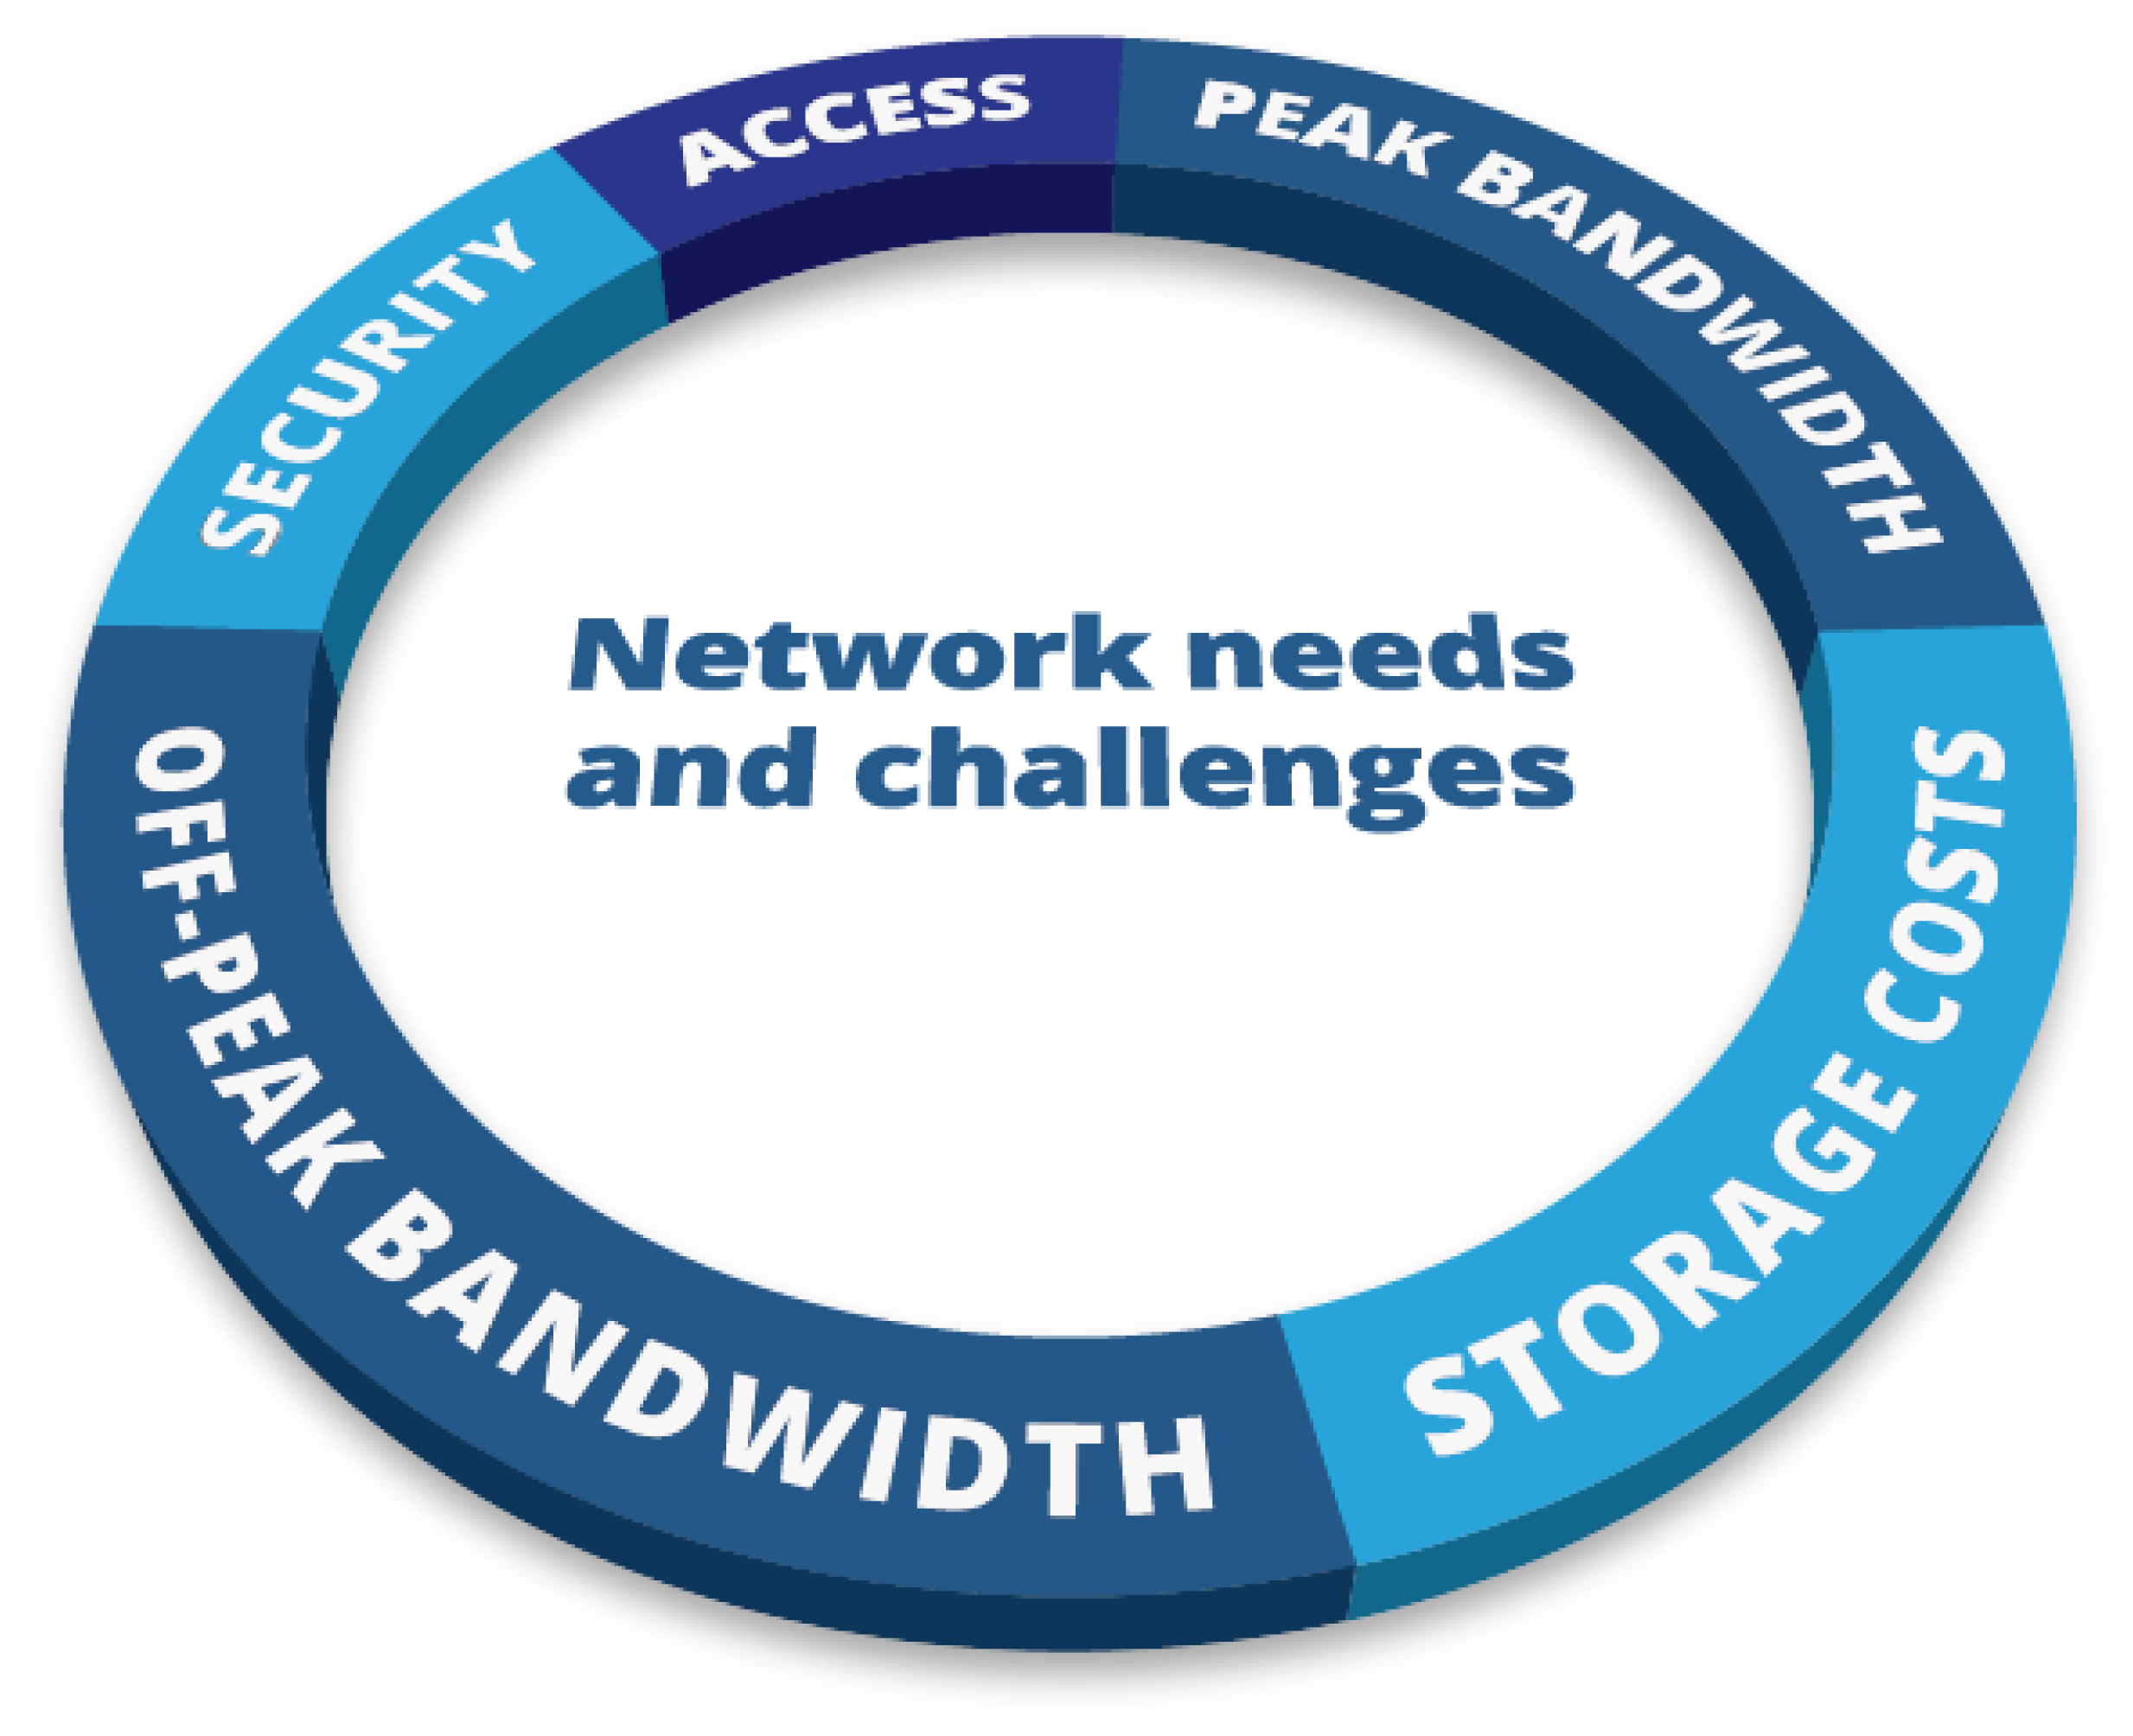 Network needs and challenges include: security, access, peak bandwidth, off-peak bandwidth and storage costs.